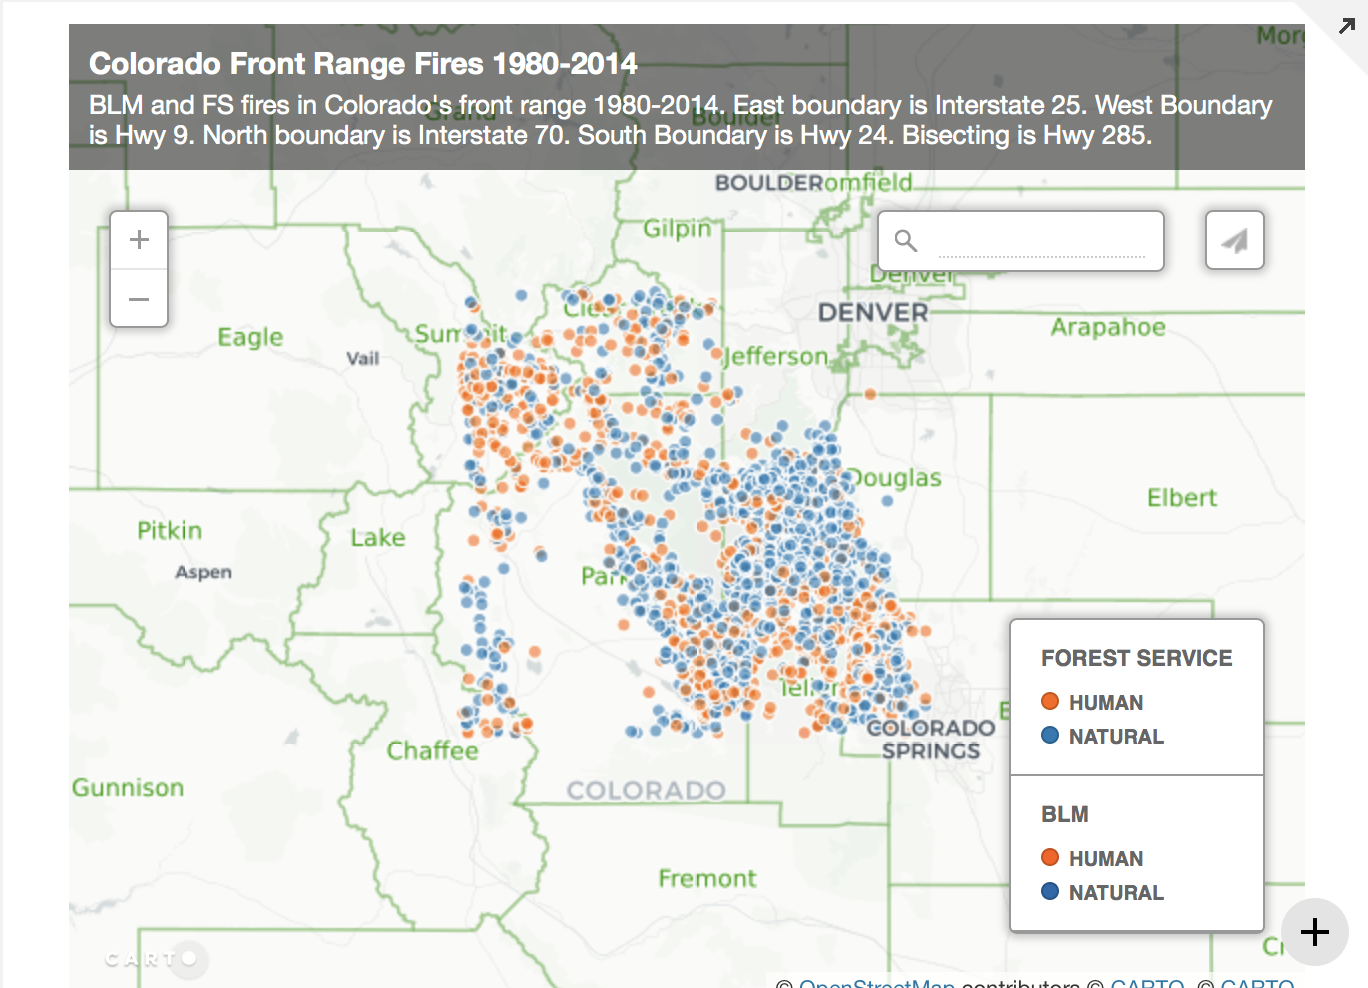 Hwy 285 corridor fire data 1980 2014 18 chains hwy 285 corridor fire data 1980 2014 publicscrutiny Image collections